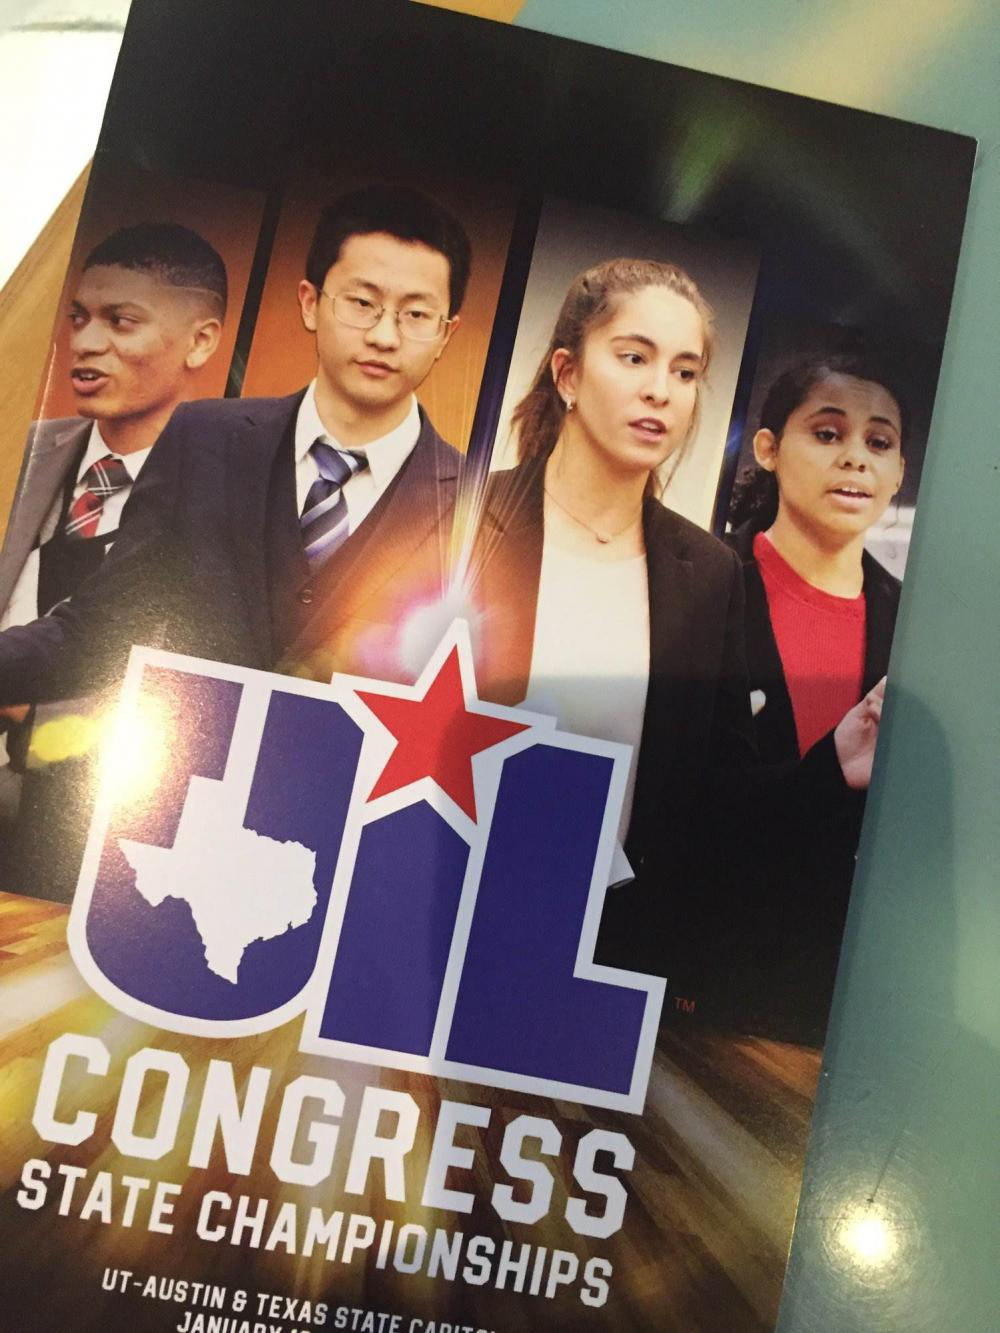 UIL student congress front cover